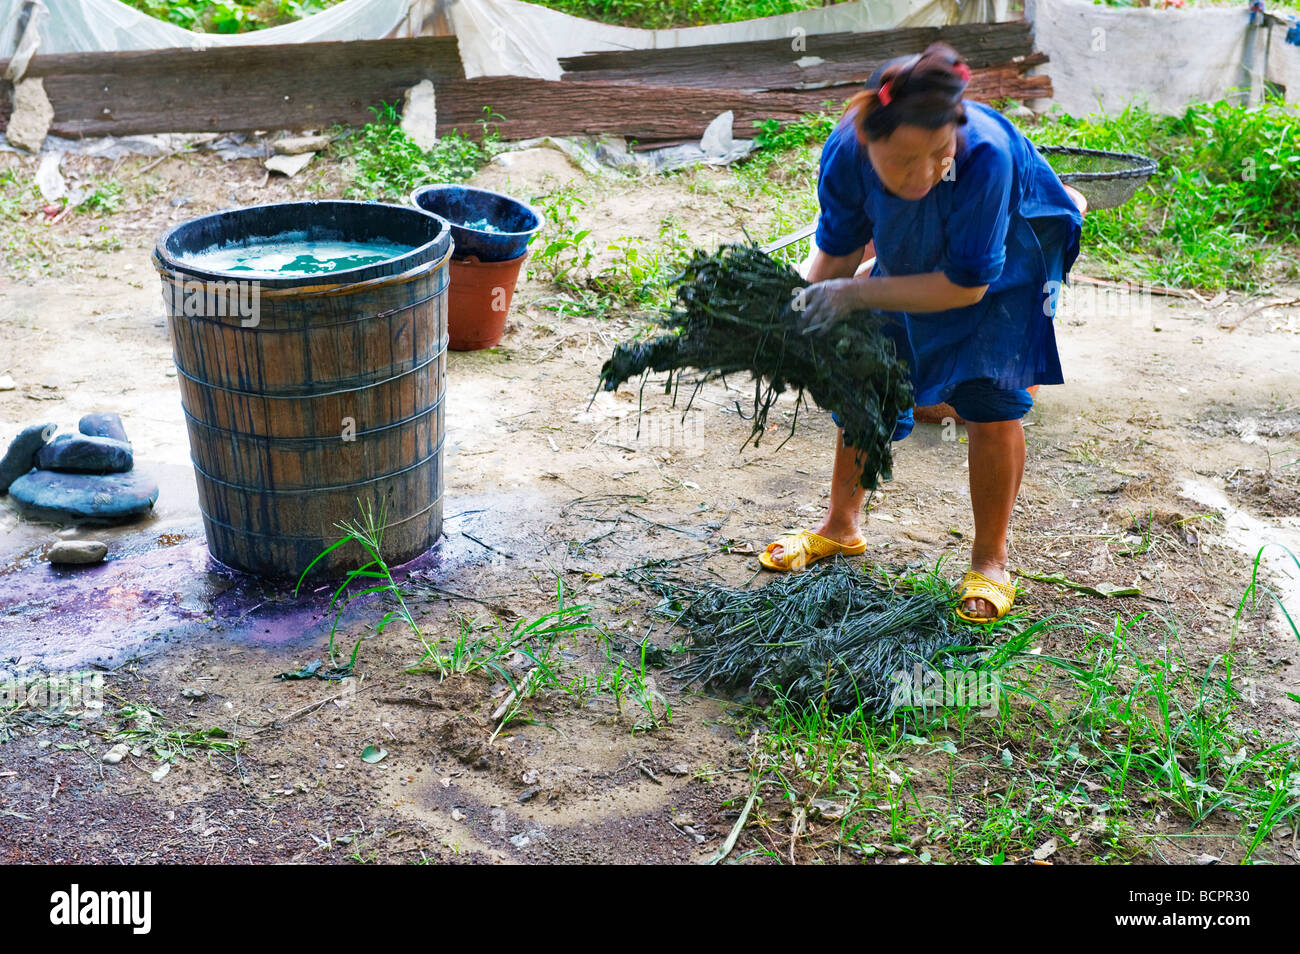 Miao woman soaking plants to extract plant color used in wax dyeing, - Stock Image